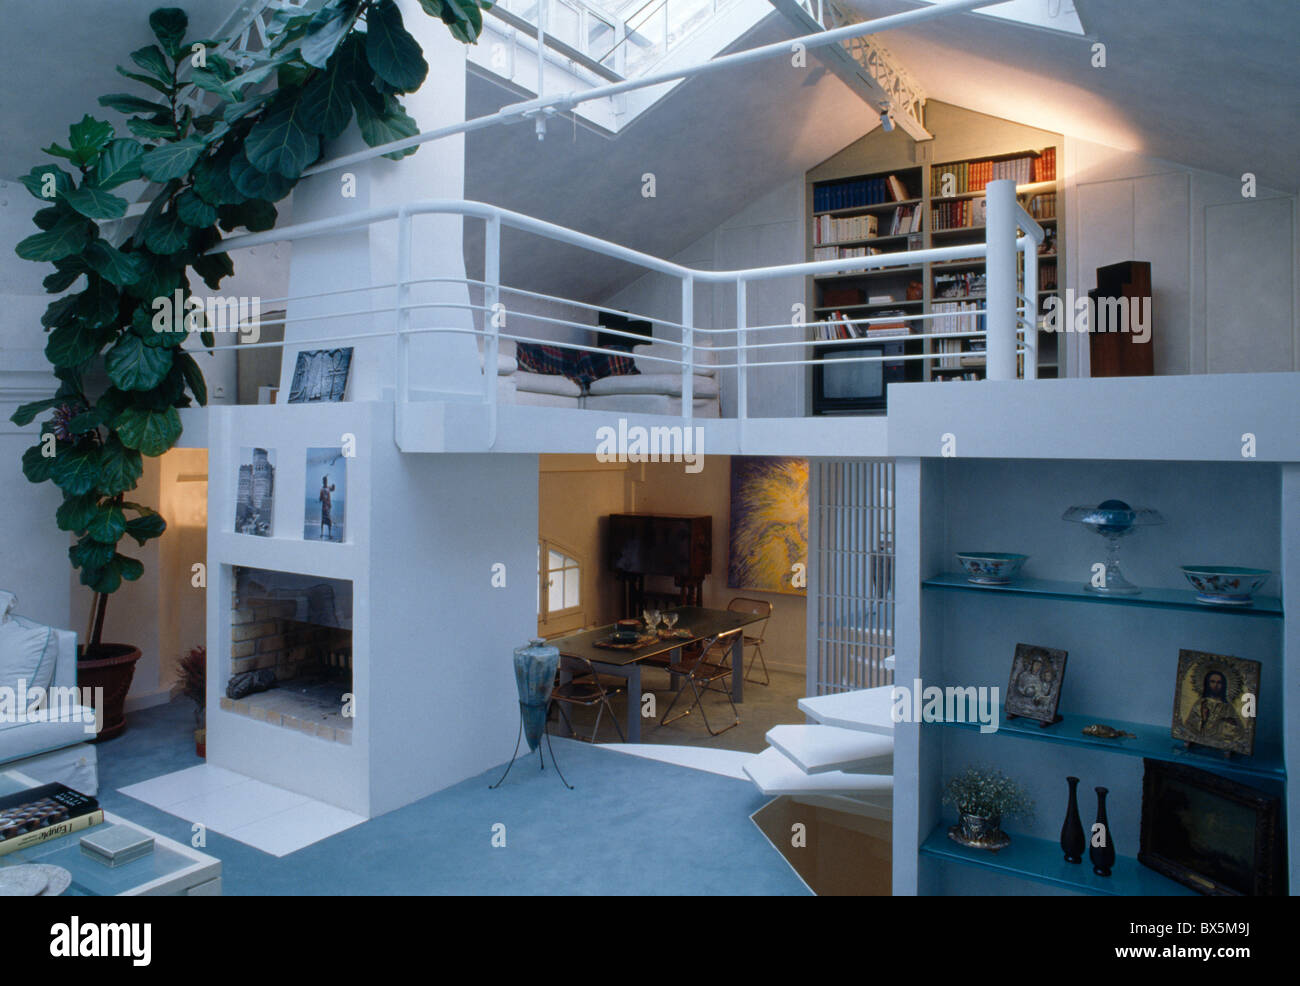 Large green houseplant in white open plan loft conversion with stock photo royalty free image - Open mezzanine ...